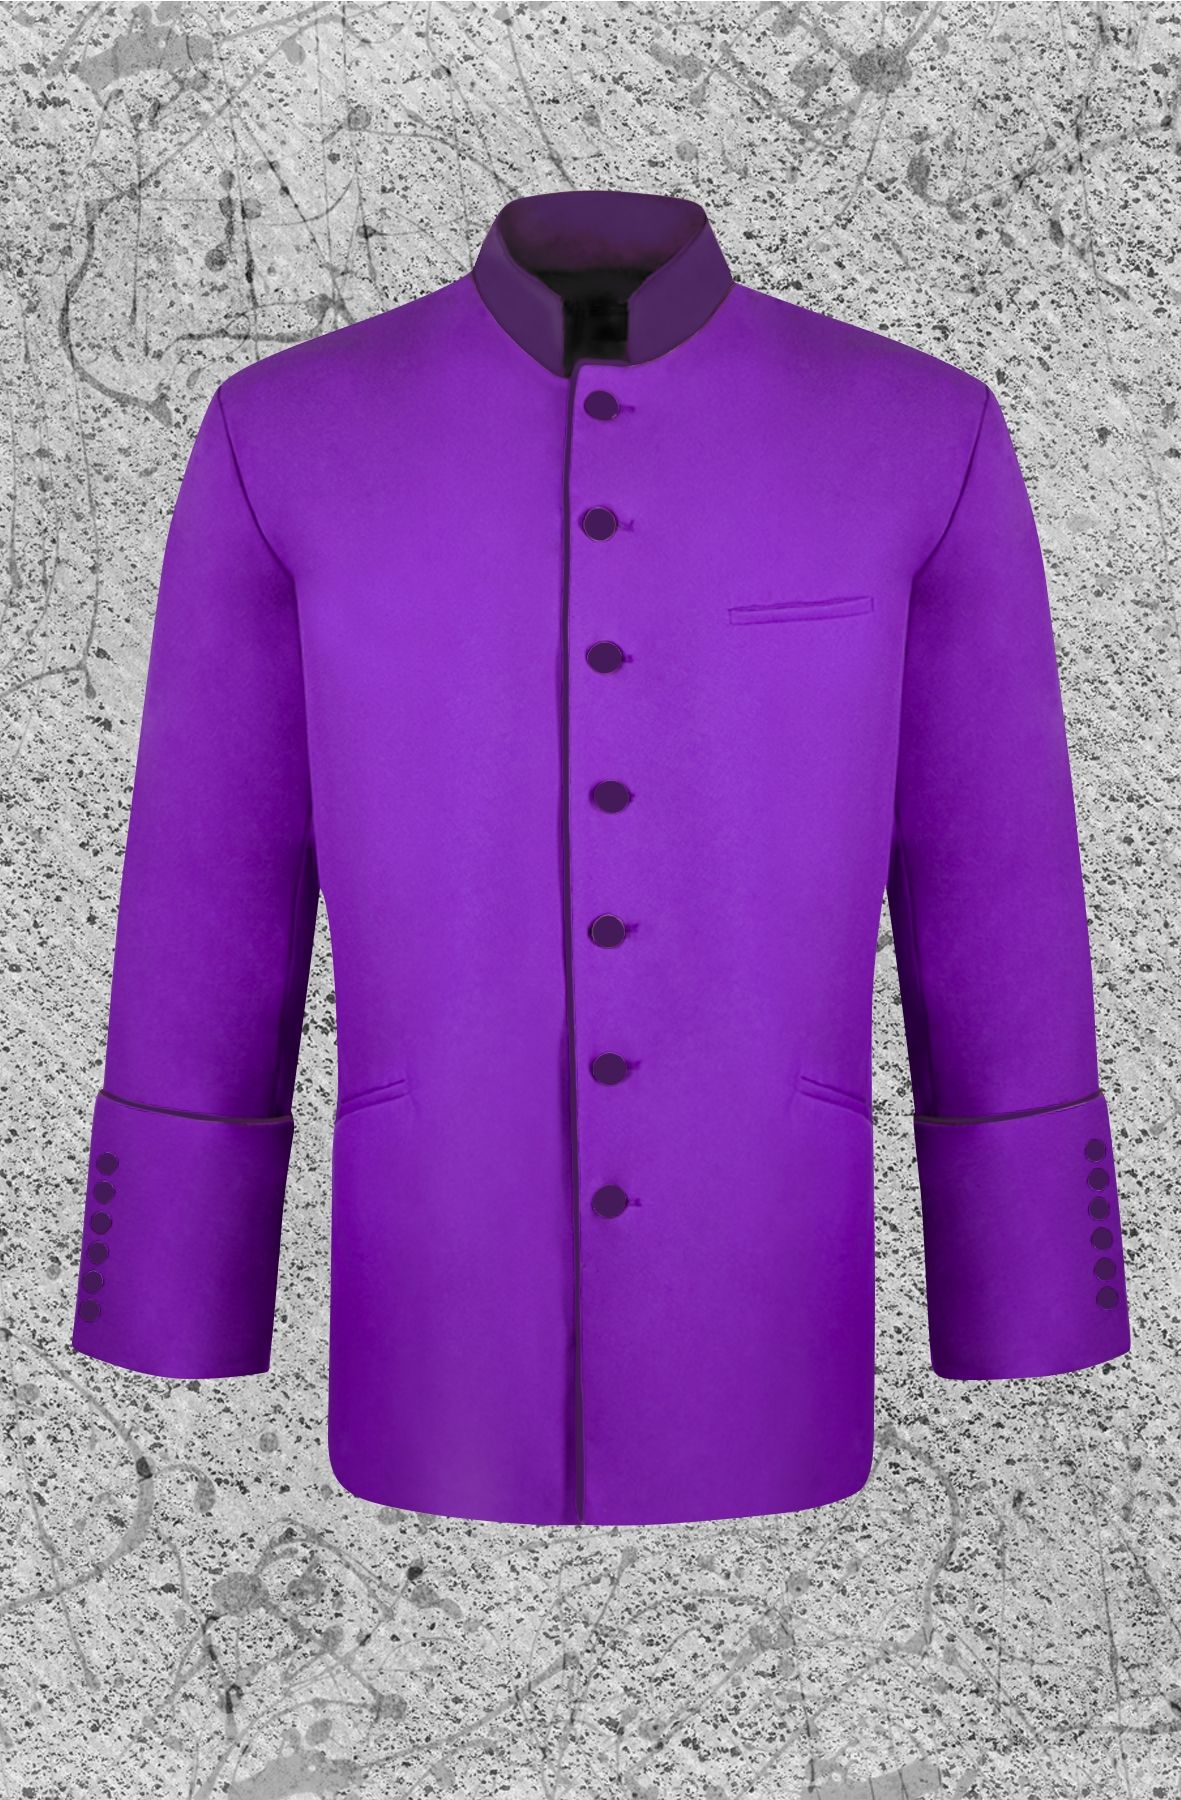 Men's Purple Clergy Jacket